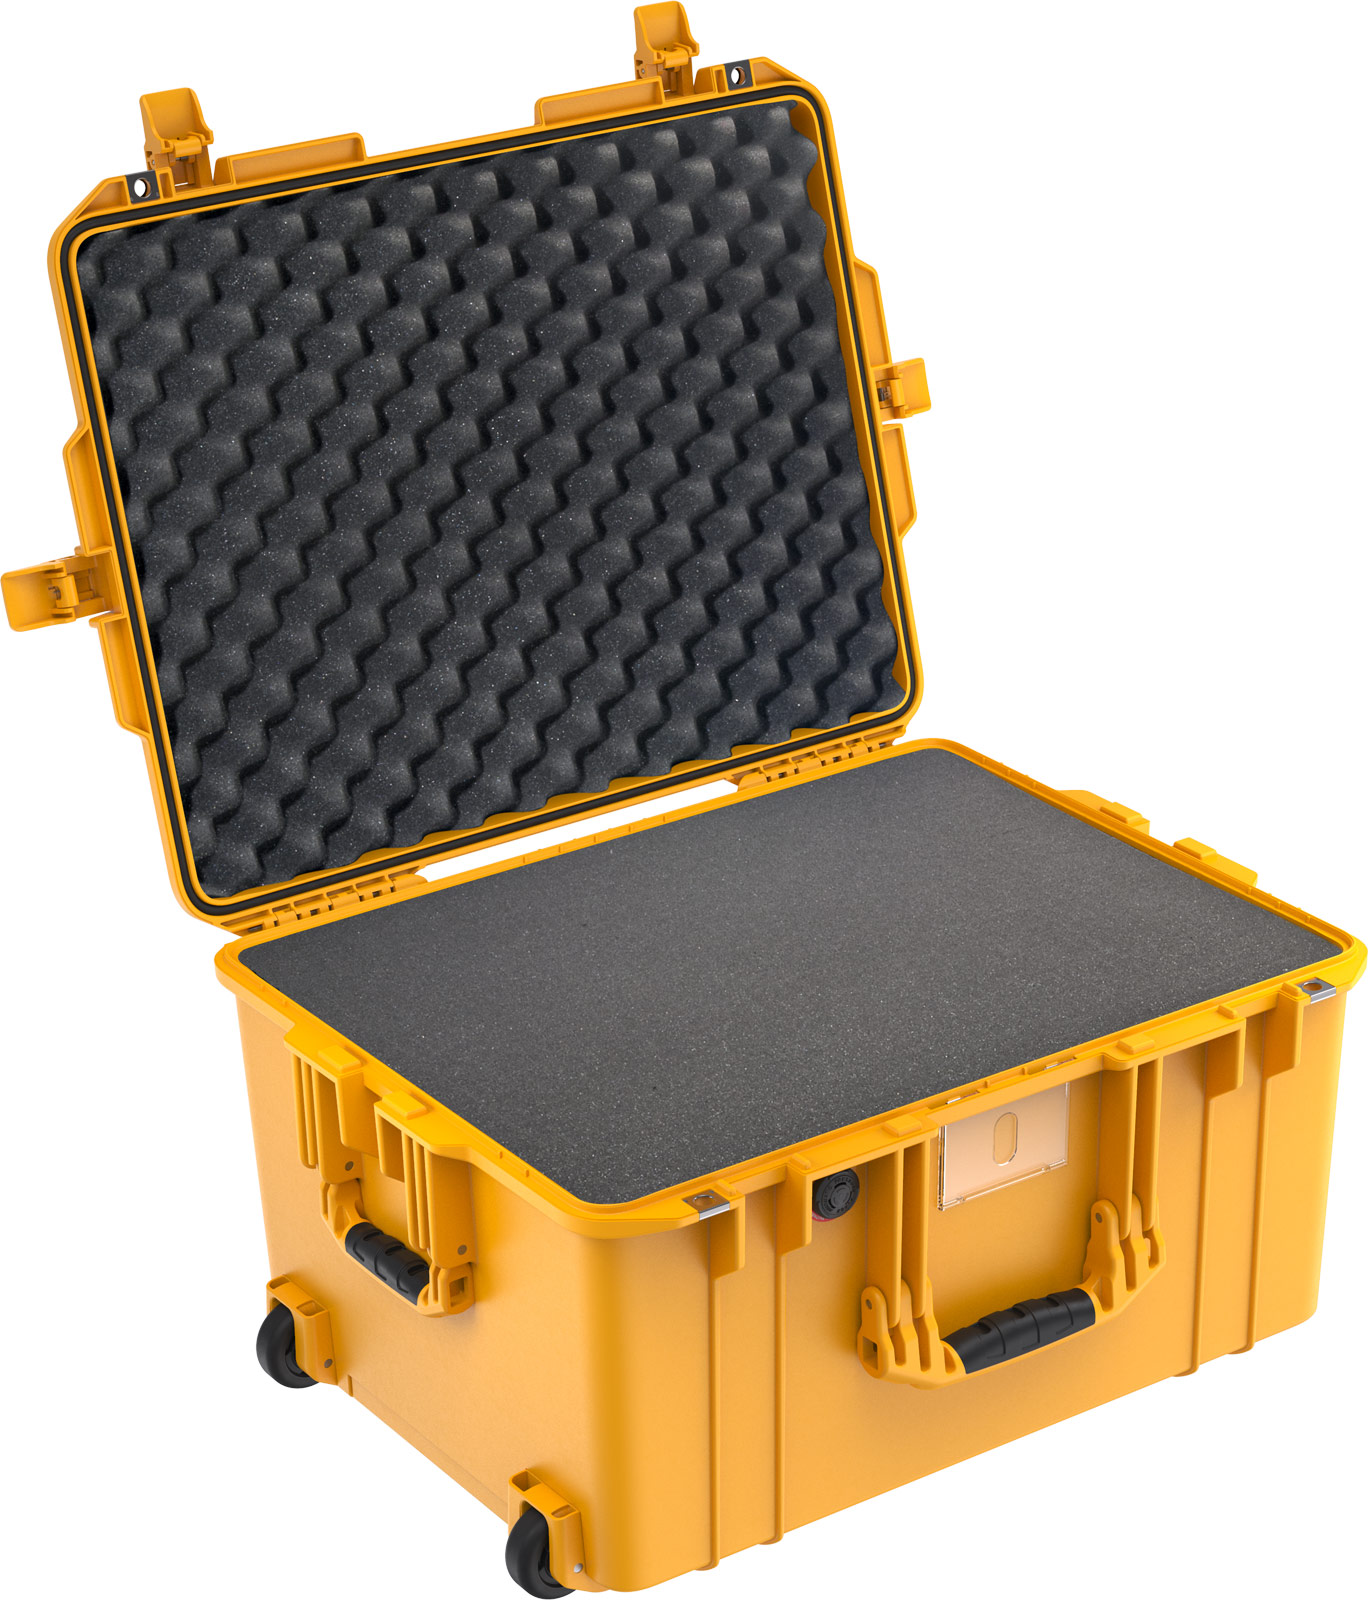 pelican deep drone case 1607 yellow